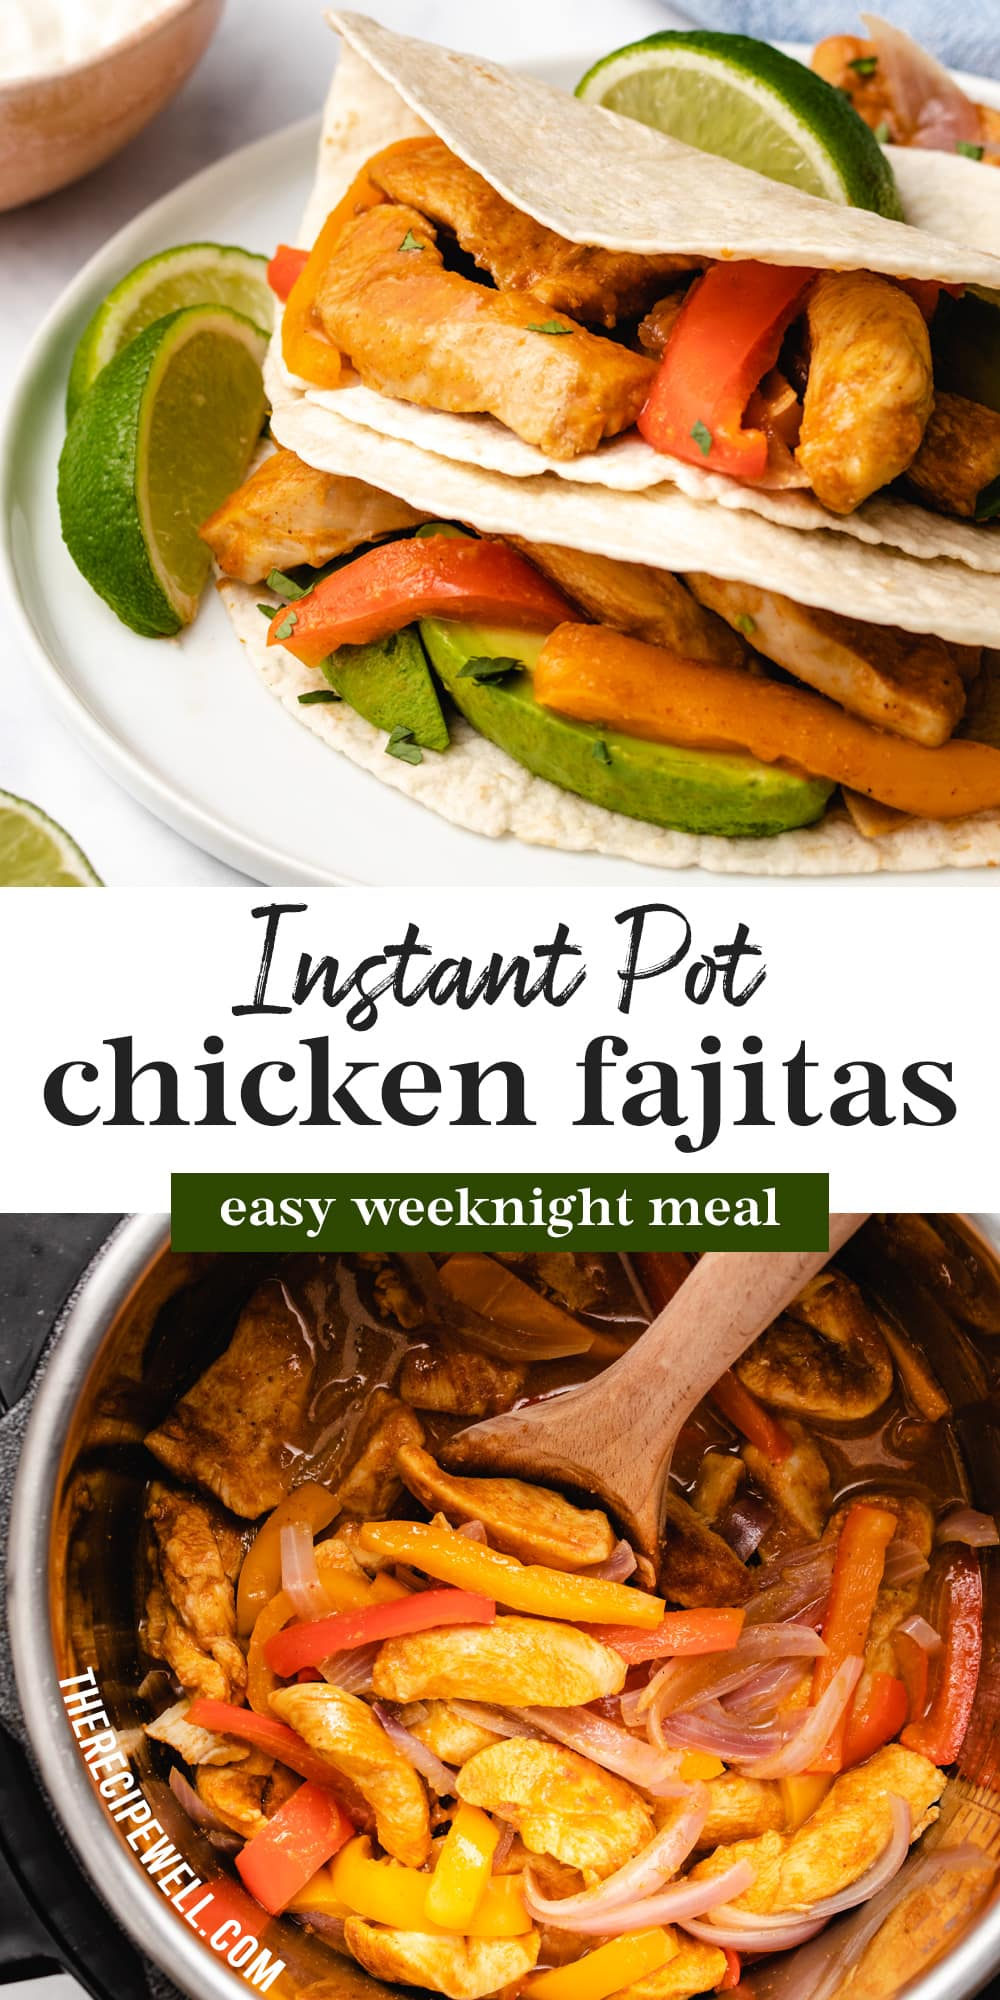 Instant Pot Chicken Fajitas are such an easy weeknight meal. Toss the chicken in the delicious spice mix, top with the peppers and onion and let the Instant Pot do the rest of the work. It's sure to become a family favourite! via @therecipewell